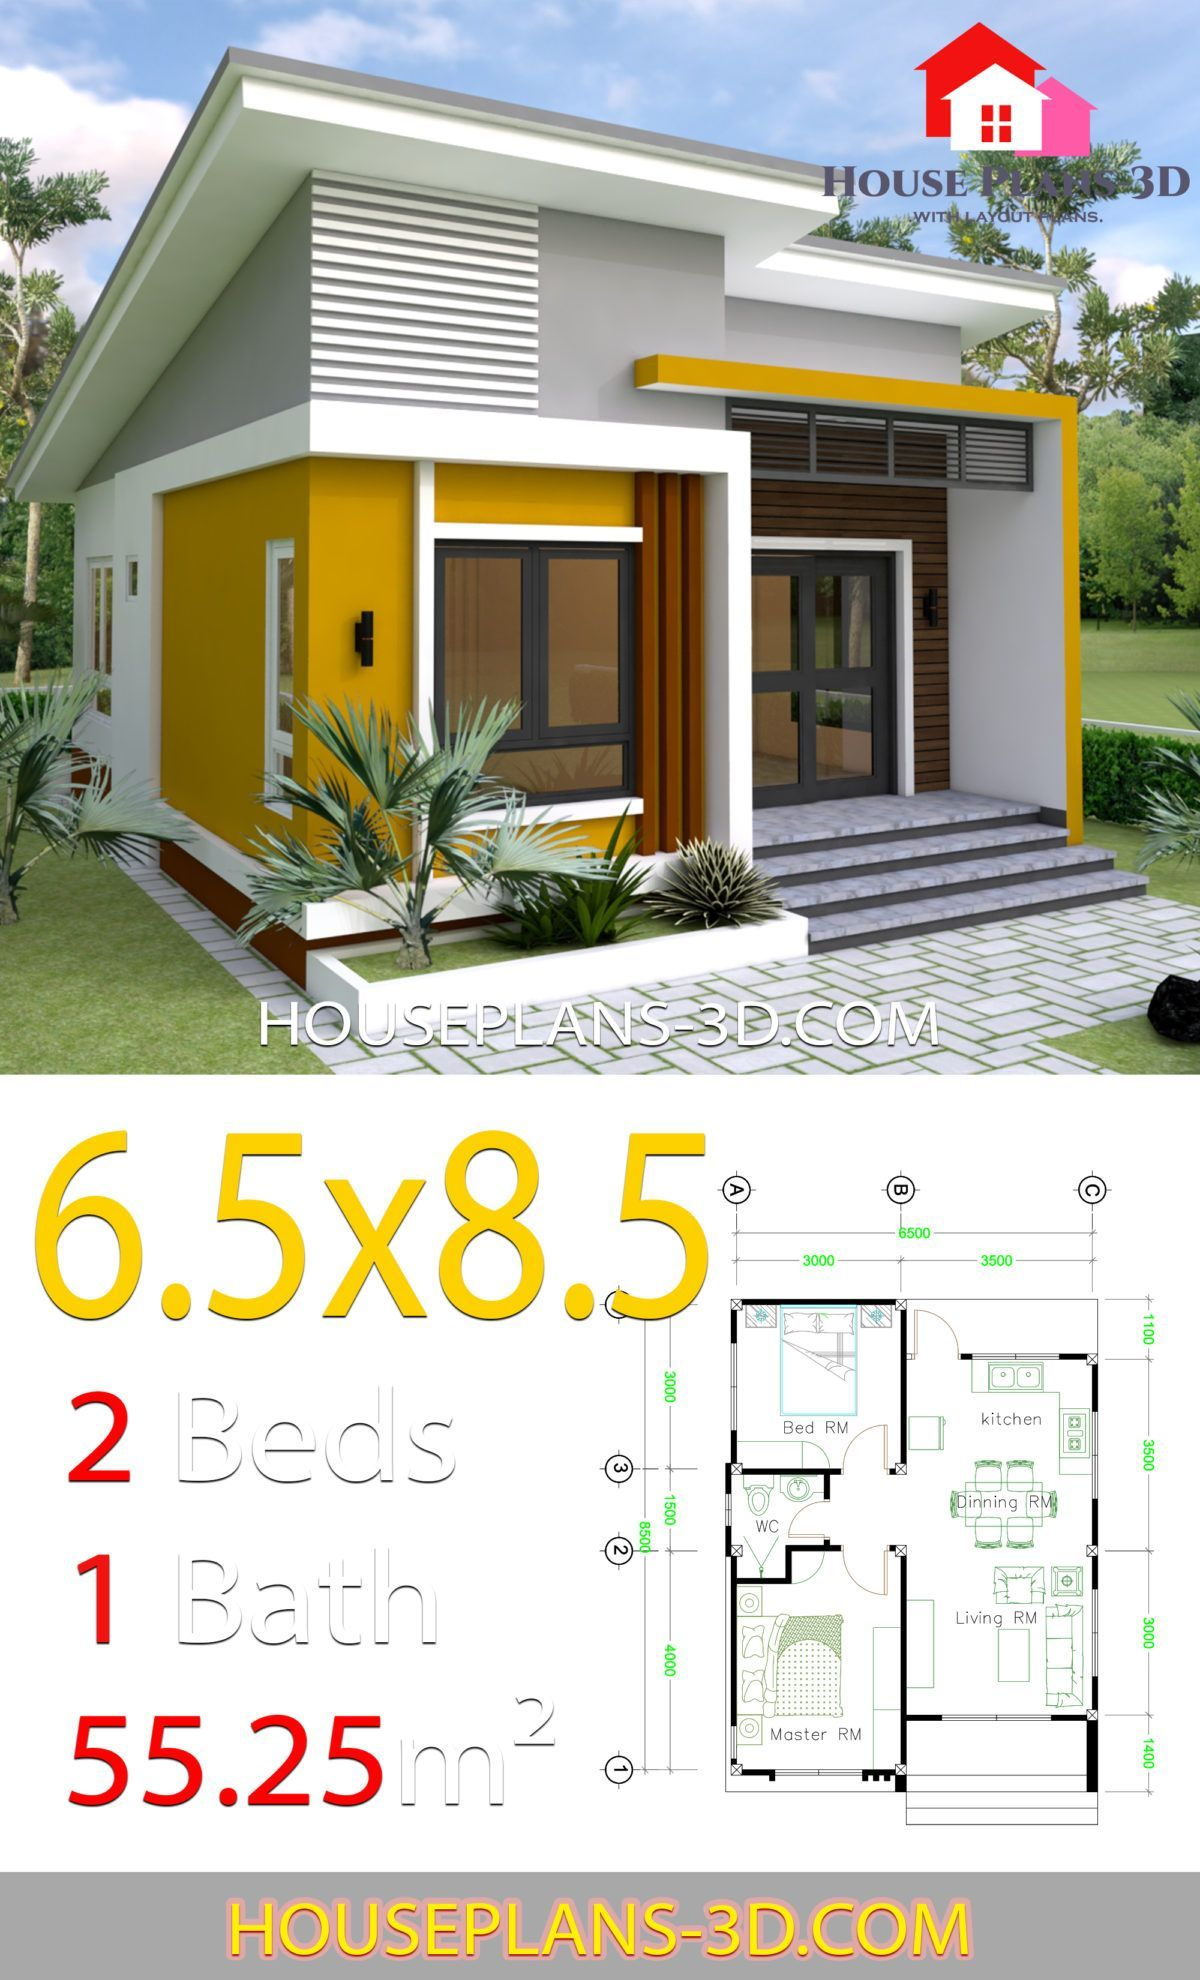 Small House Design 6 5x8 5 With 2 Bedrooms House Design Simple House Design 2 Bedroom House Design Brick House Designs